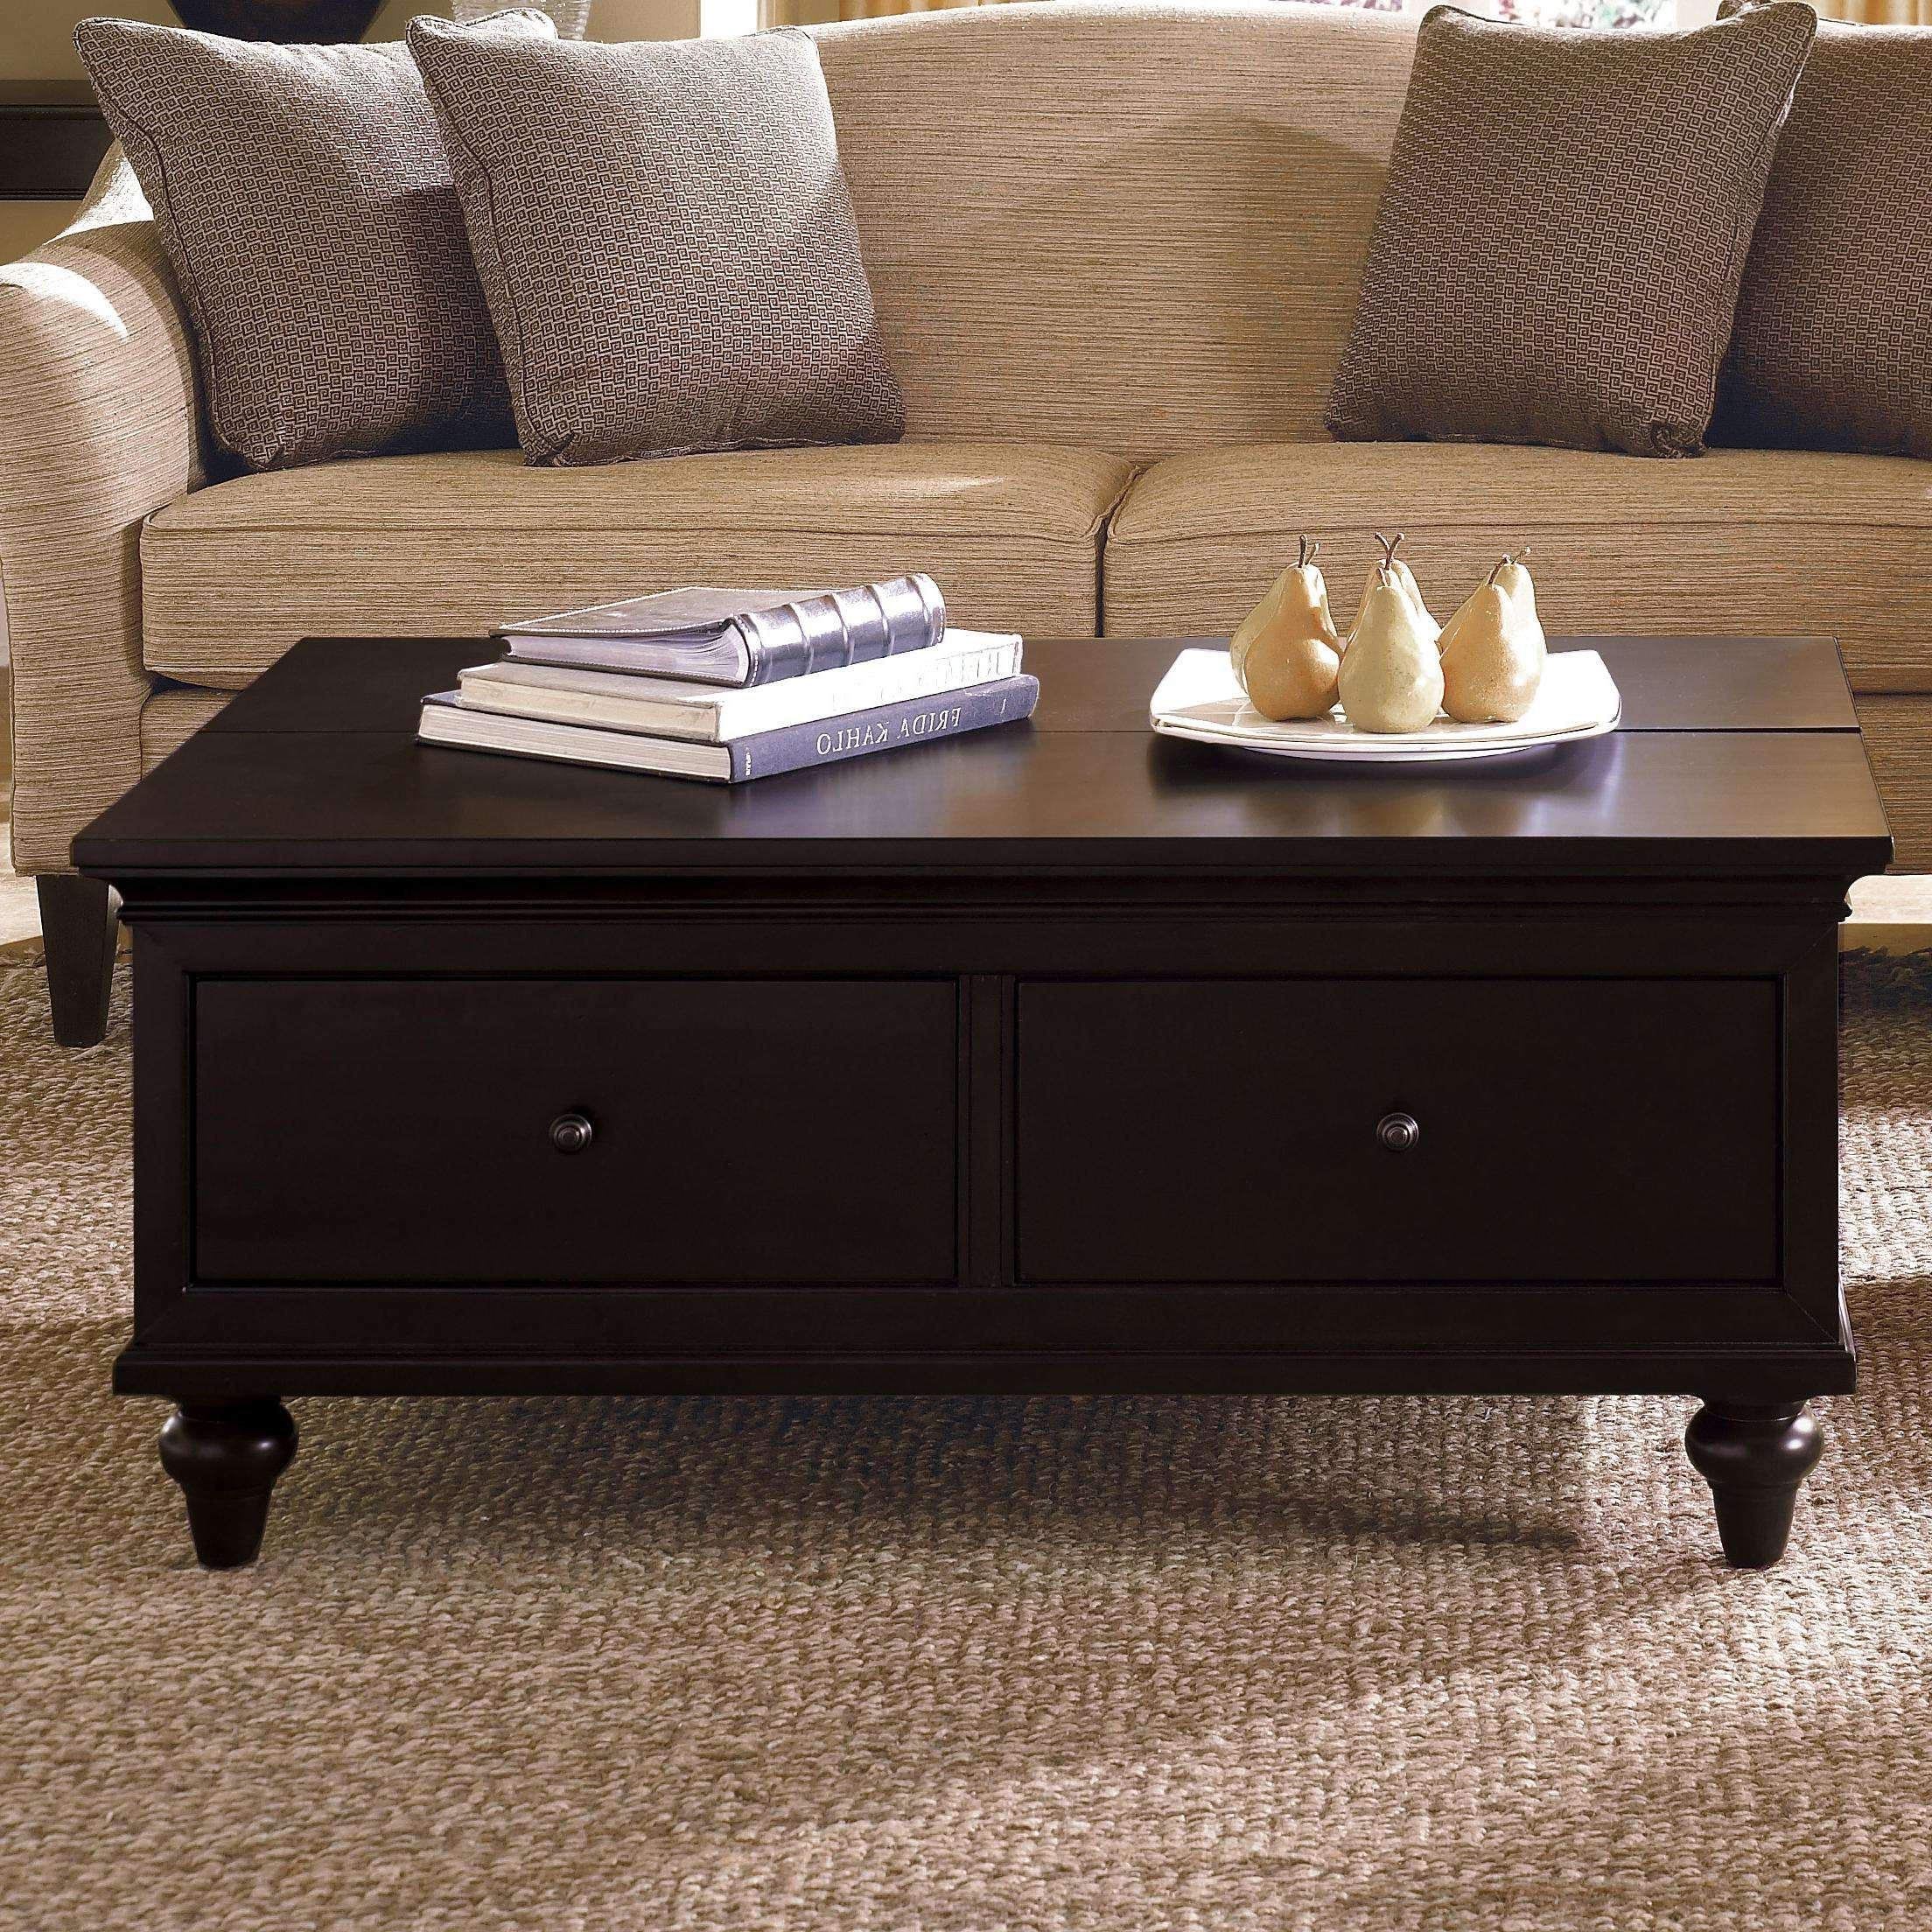 Favorite Square Coffee Tables With Drawers Pertaining To Large Square Coffee Tables With Drawers • Drawer Furniture (View 10 of 20)